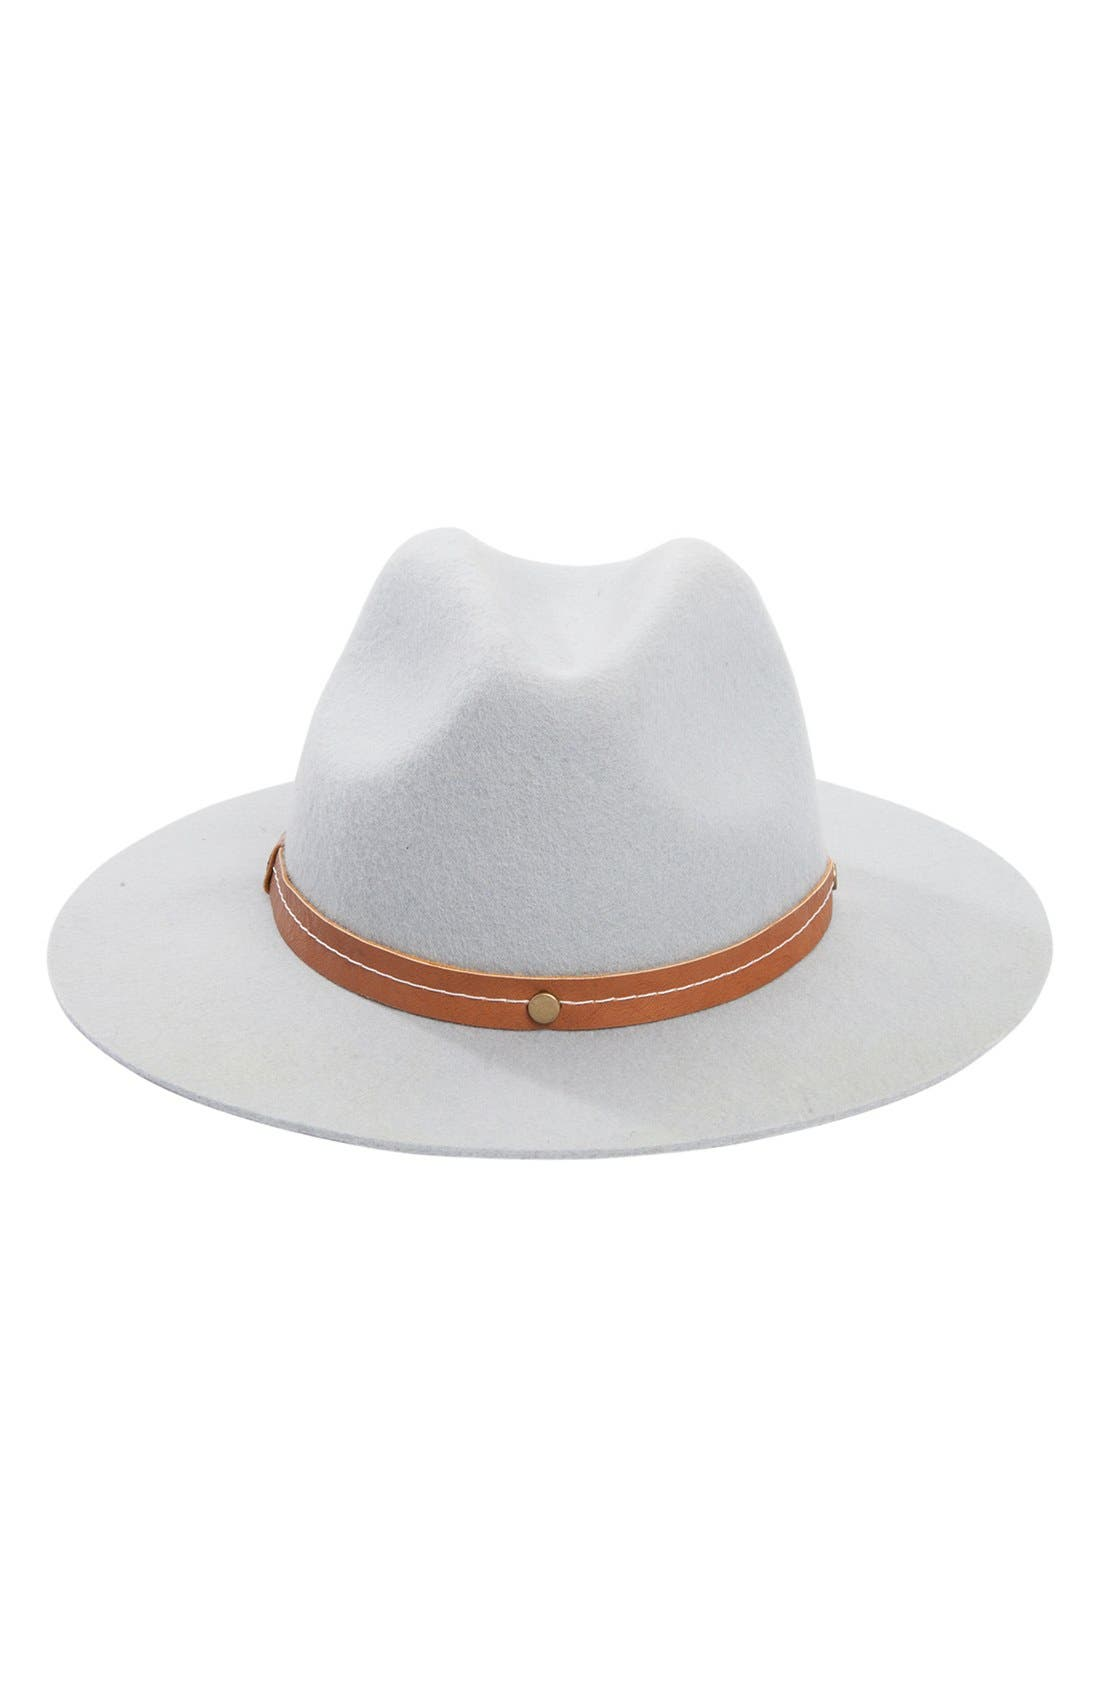 Alternate Image 1 Selected - Billabong 'Moon Gaze' Wool Panama Hat